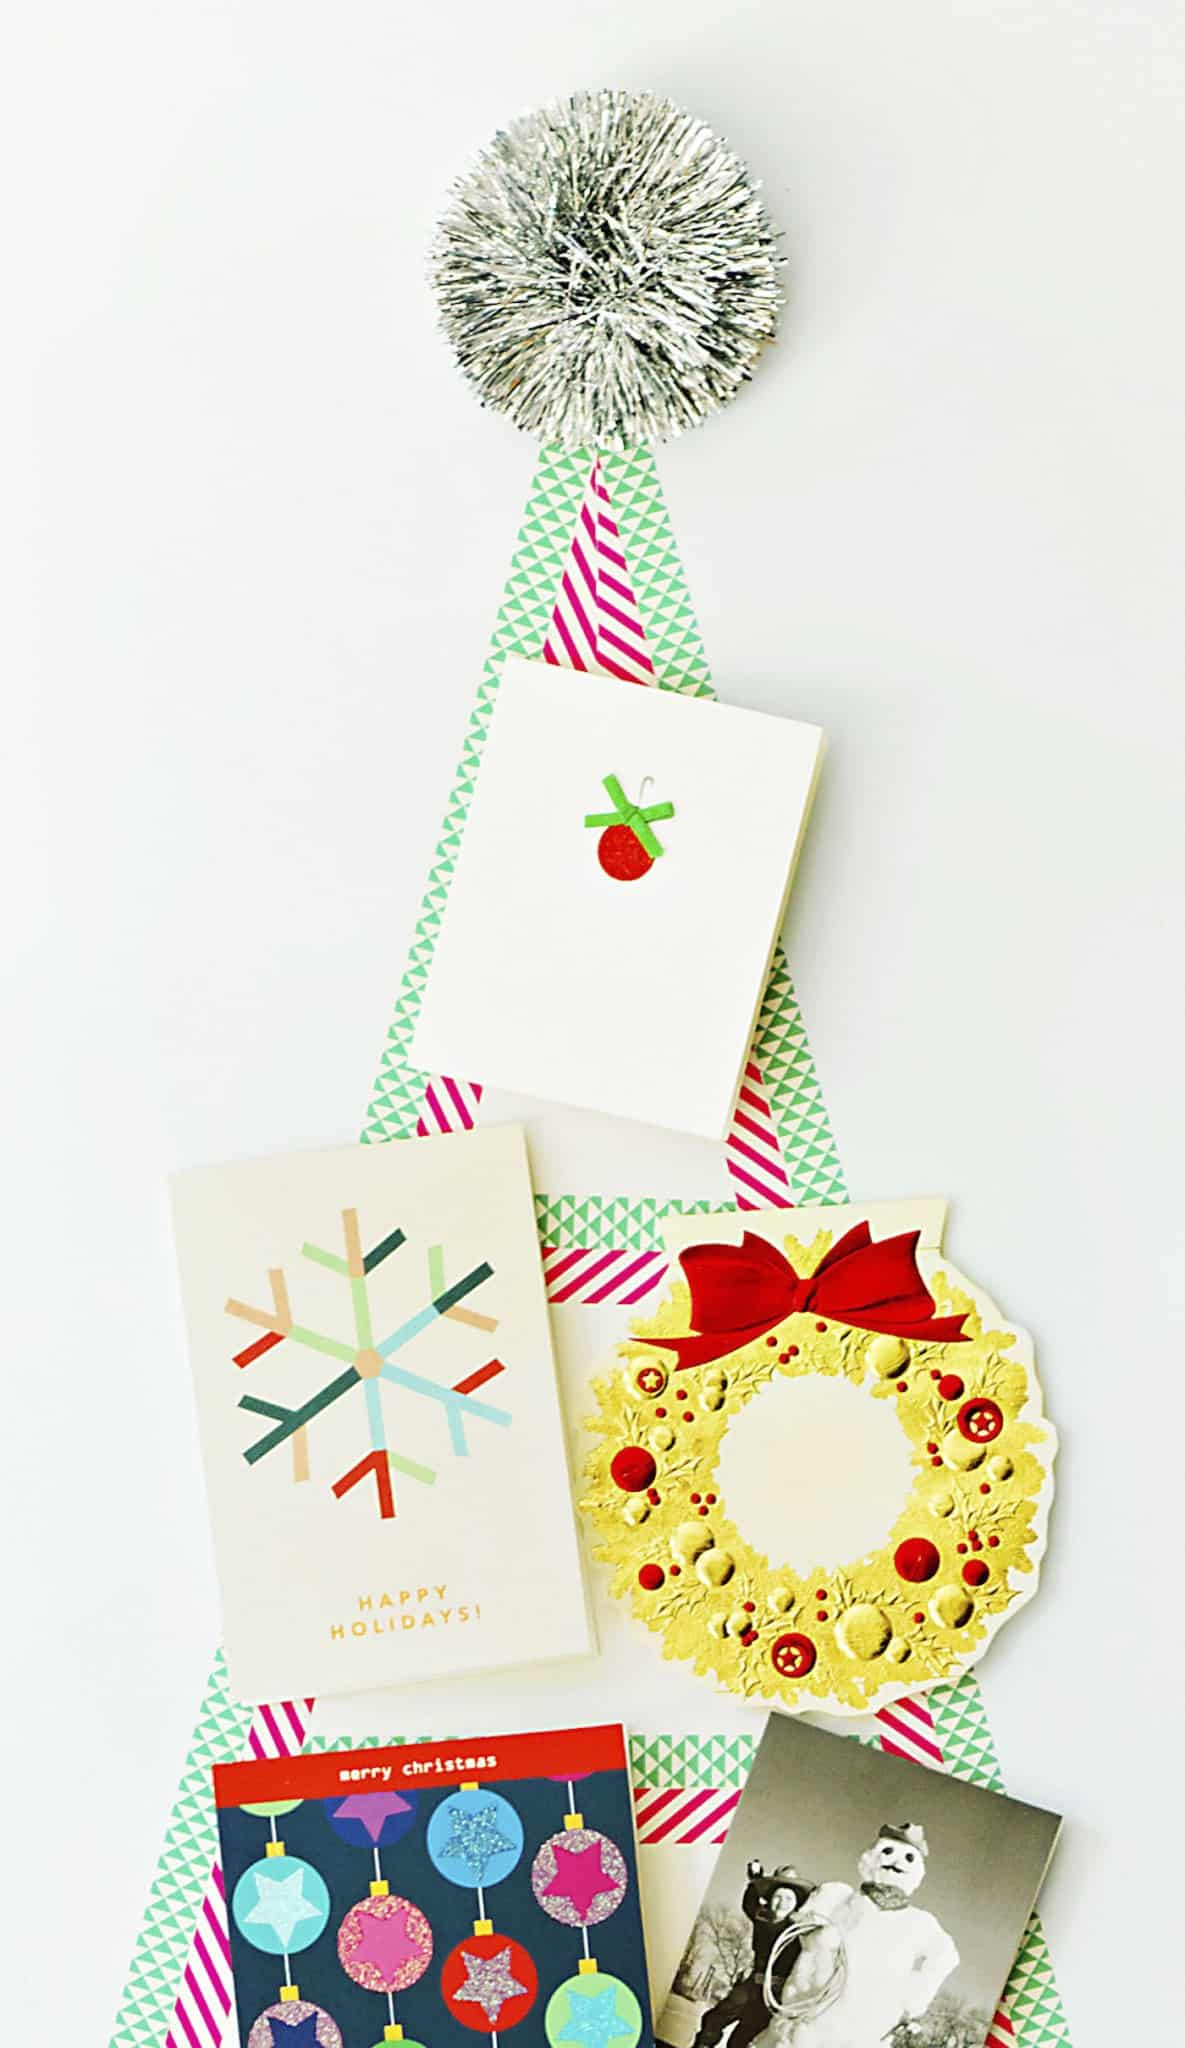 This DIY washi tape tree is a no-fuss way to display the holiday cards that arrive in your mailbox each day! It comes right off the wall when you're done.